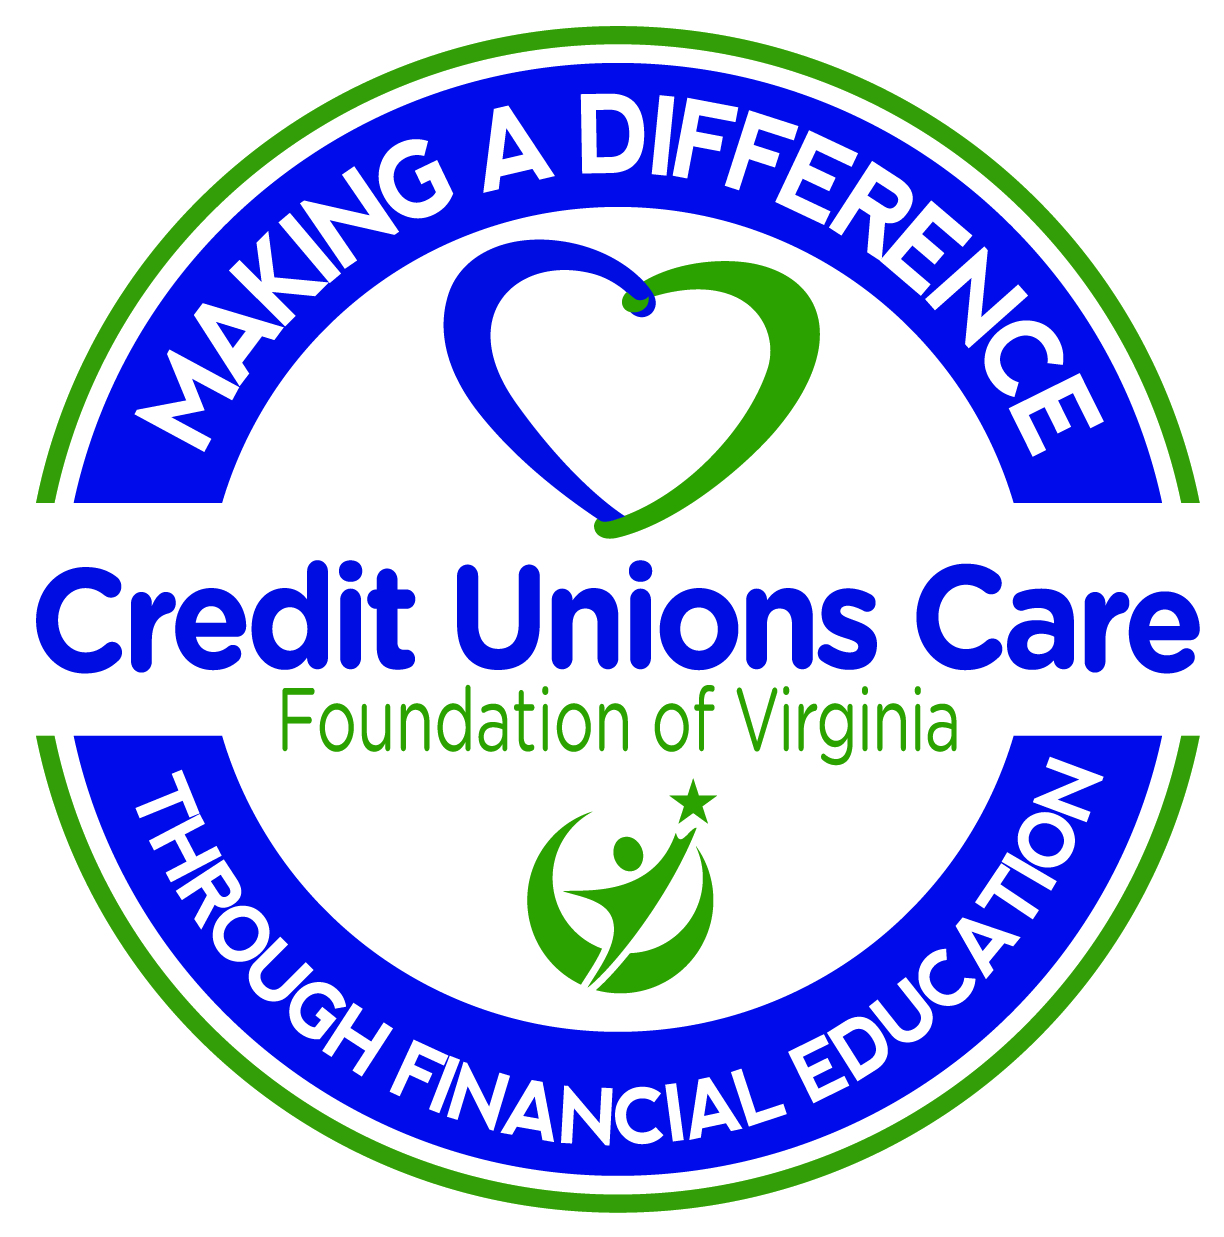 Making a Difference Through Financial Education Logo